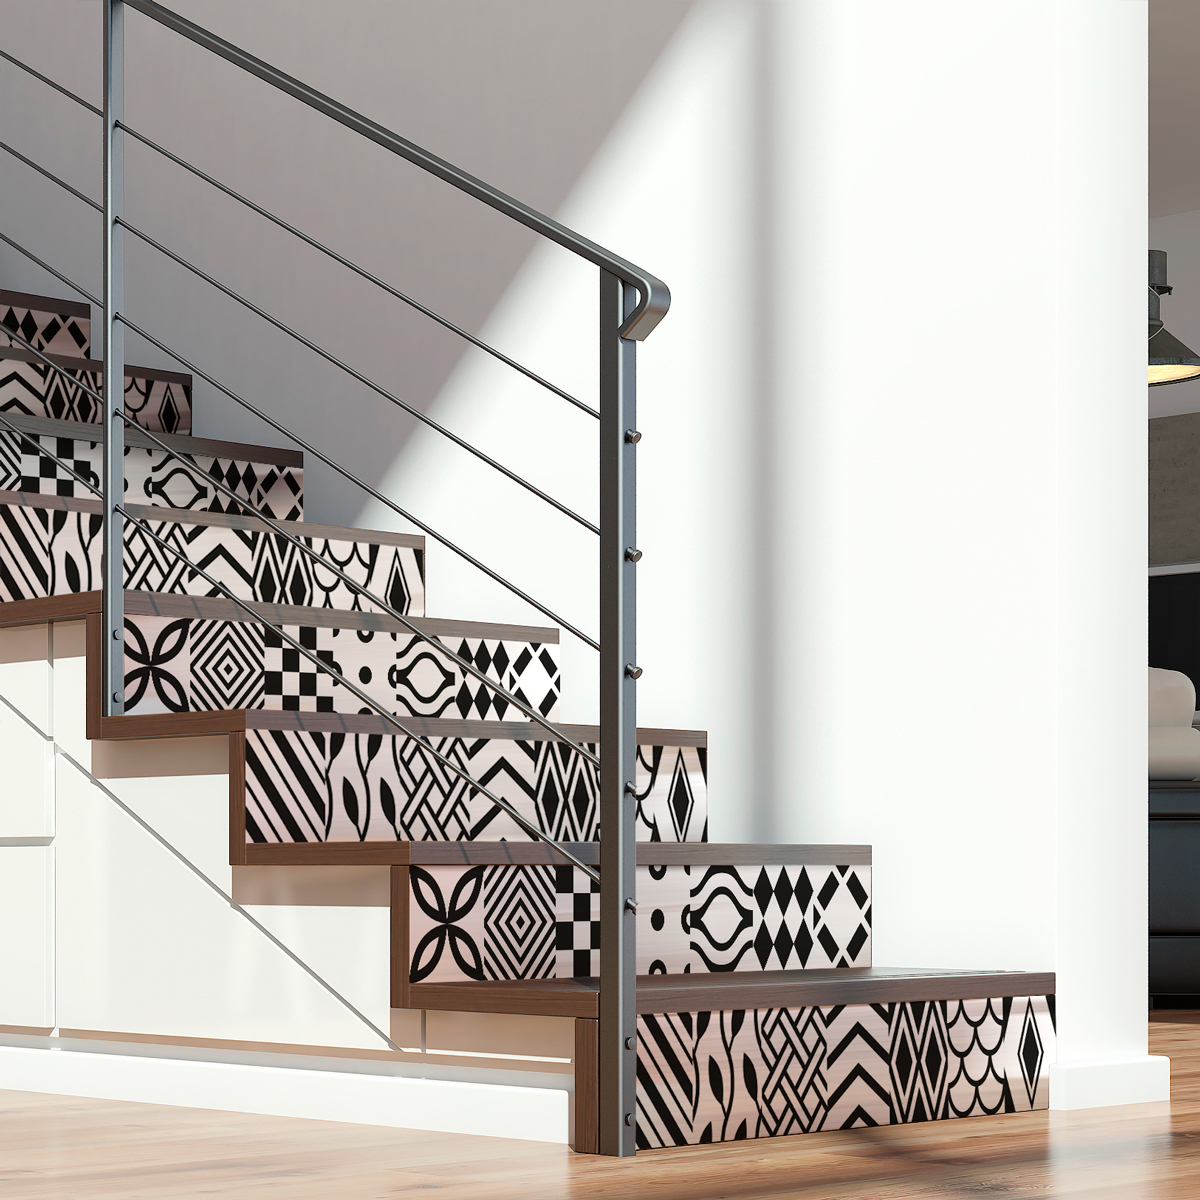 stickers escalier carreaux de ciment torborg x 2 ambiance sticker col stairs ros b055 stickers. Black Bedroom Furniture Sets. Home Design Ideas